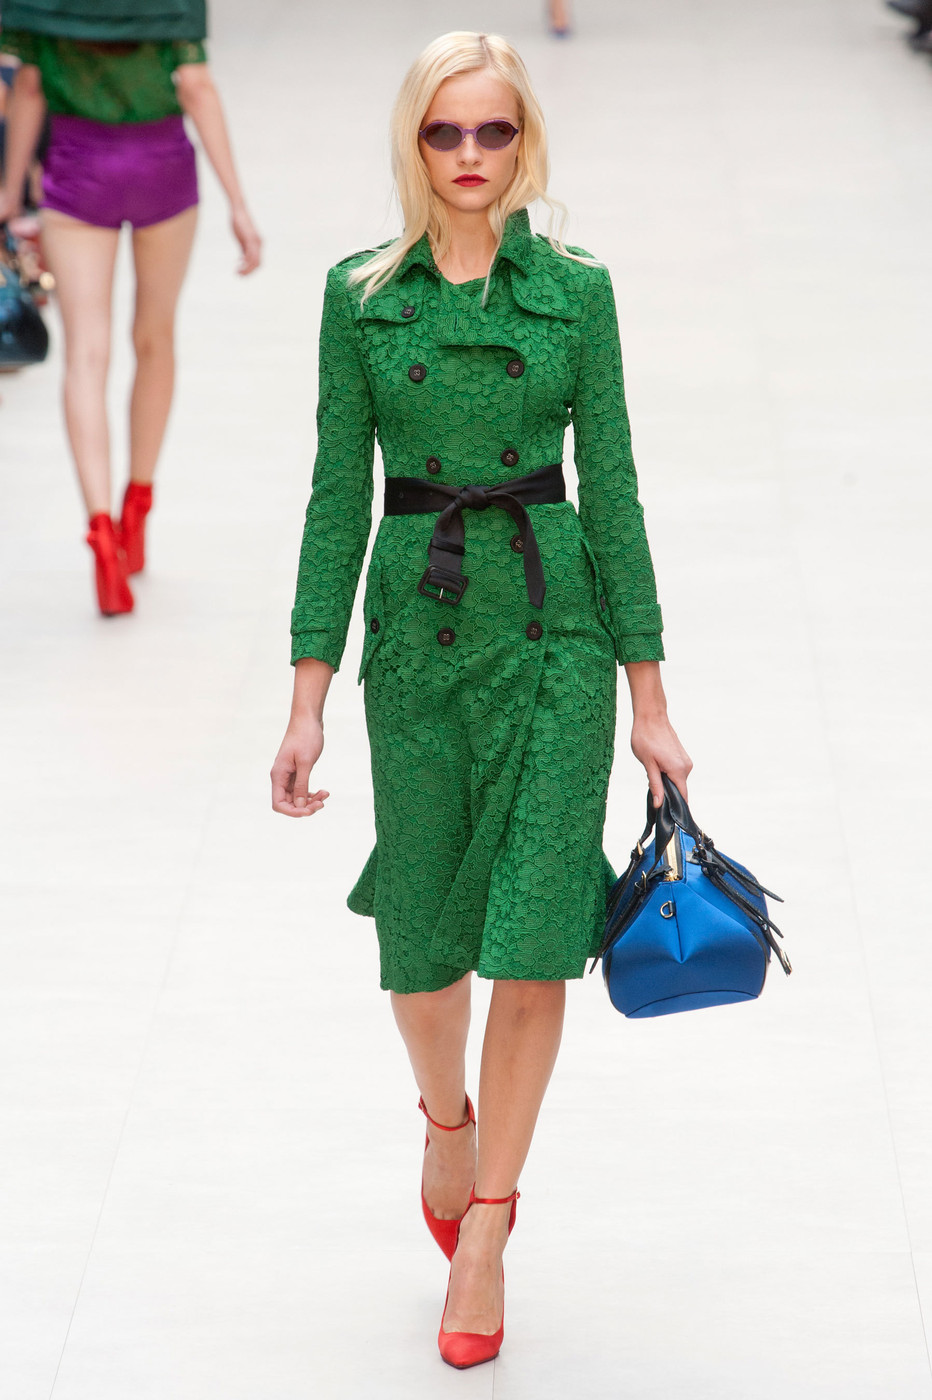 5d06bf1bfcbd3 Burberry Prorsum at London Fashion Week Spring 2013 - Livingly